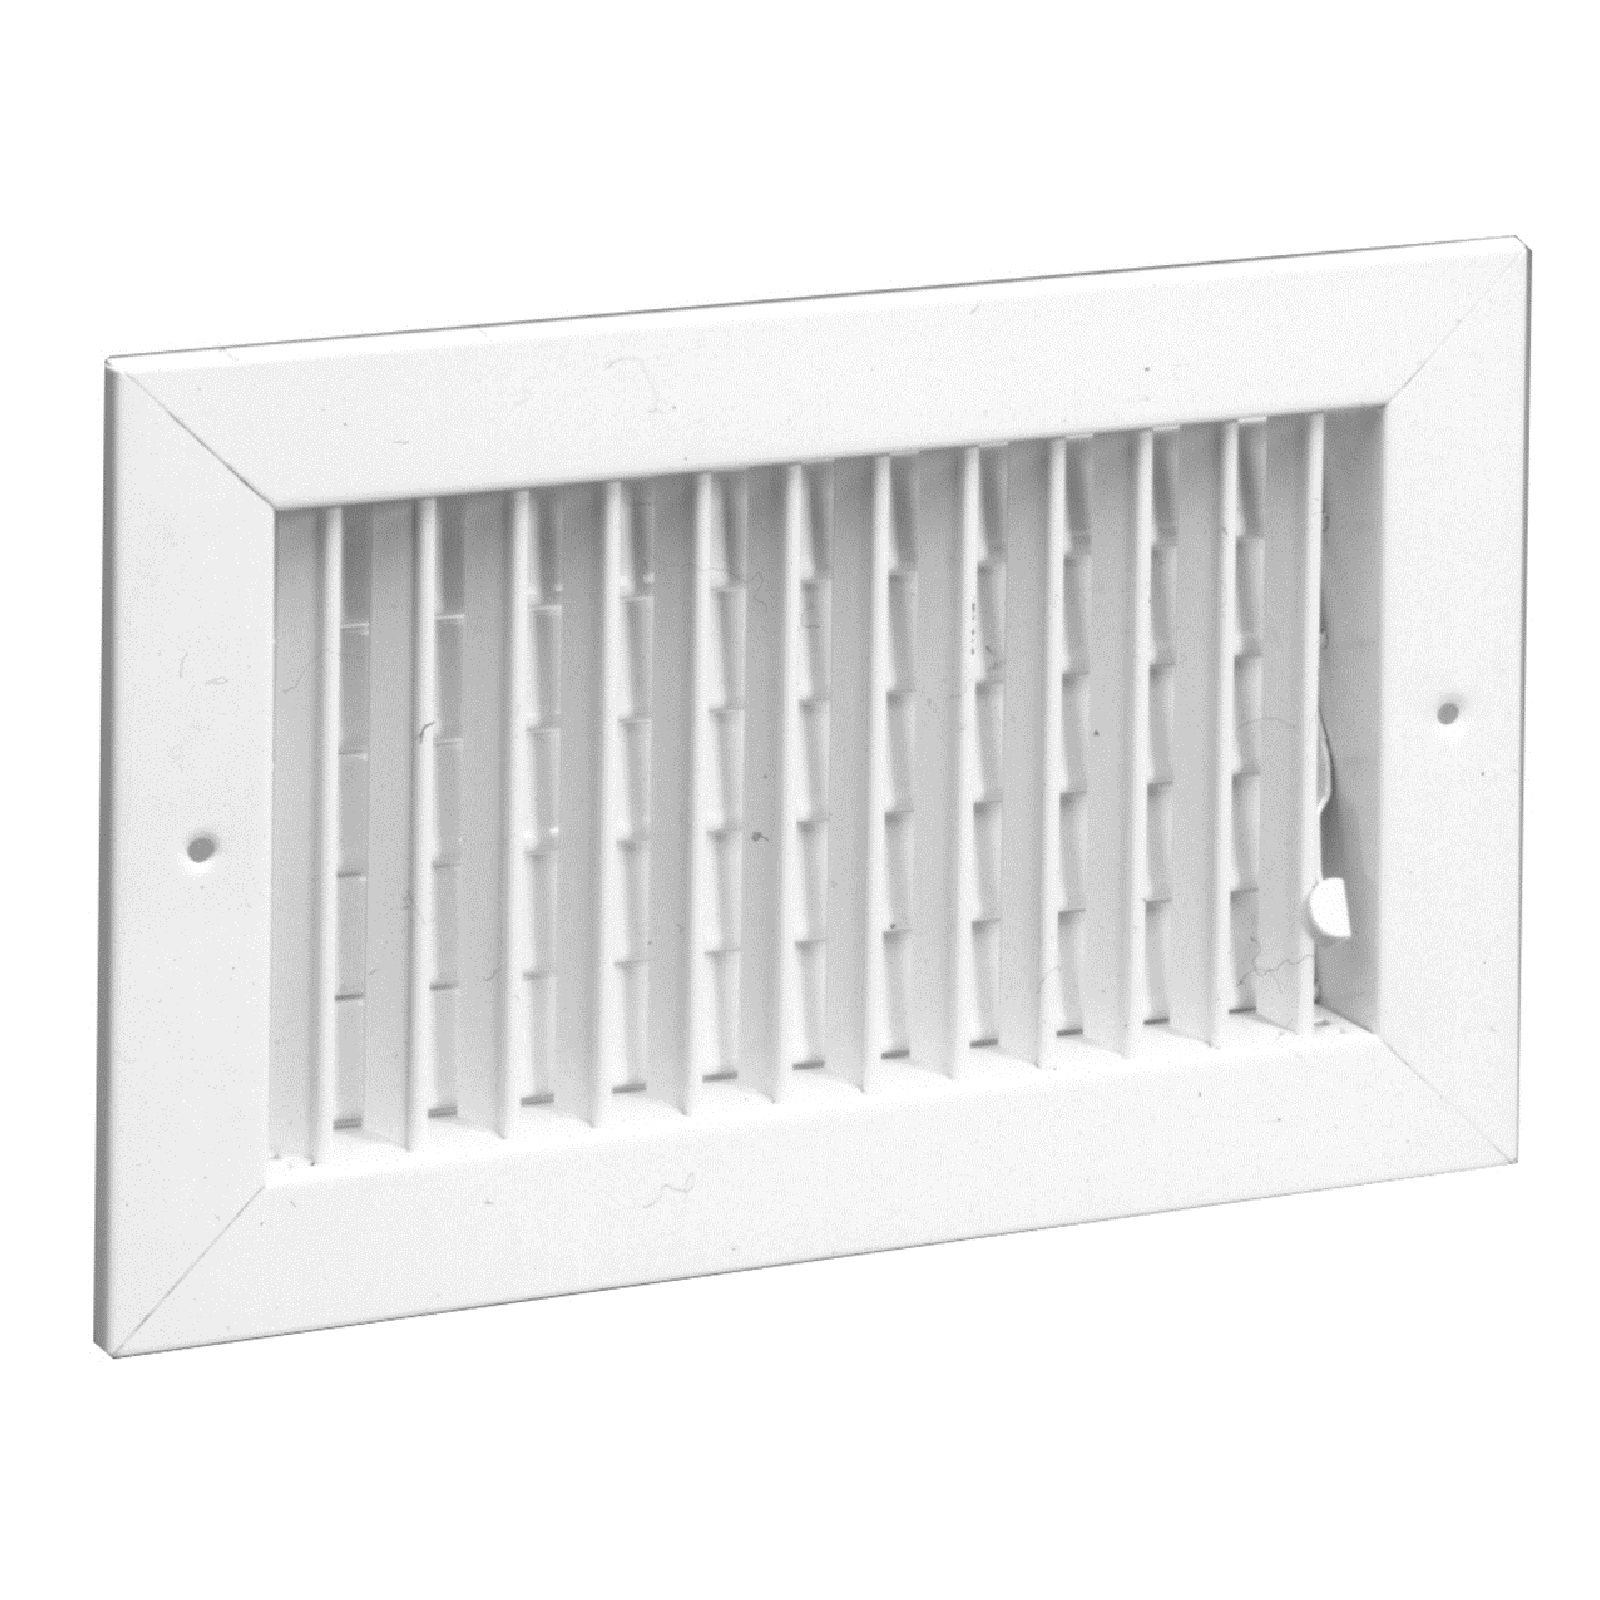 "Hart & Cooley 075032 - Steel Supply Register, Multi-Shutter Damper, White Finish, 18"" X 8"""